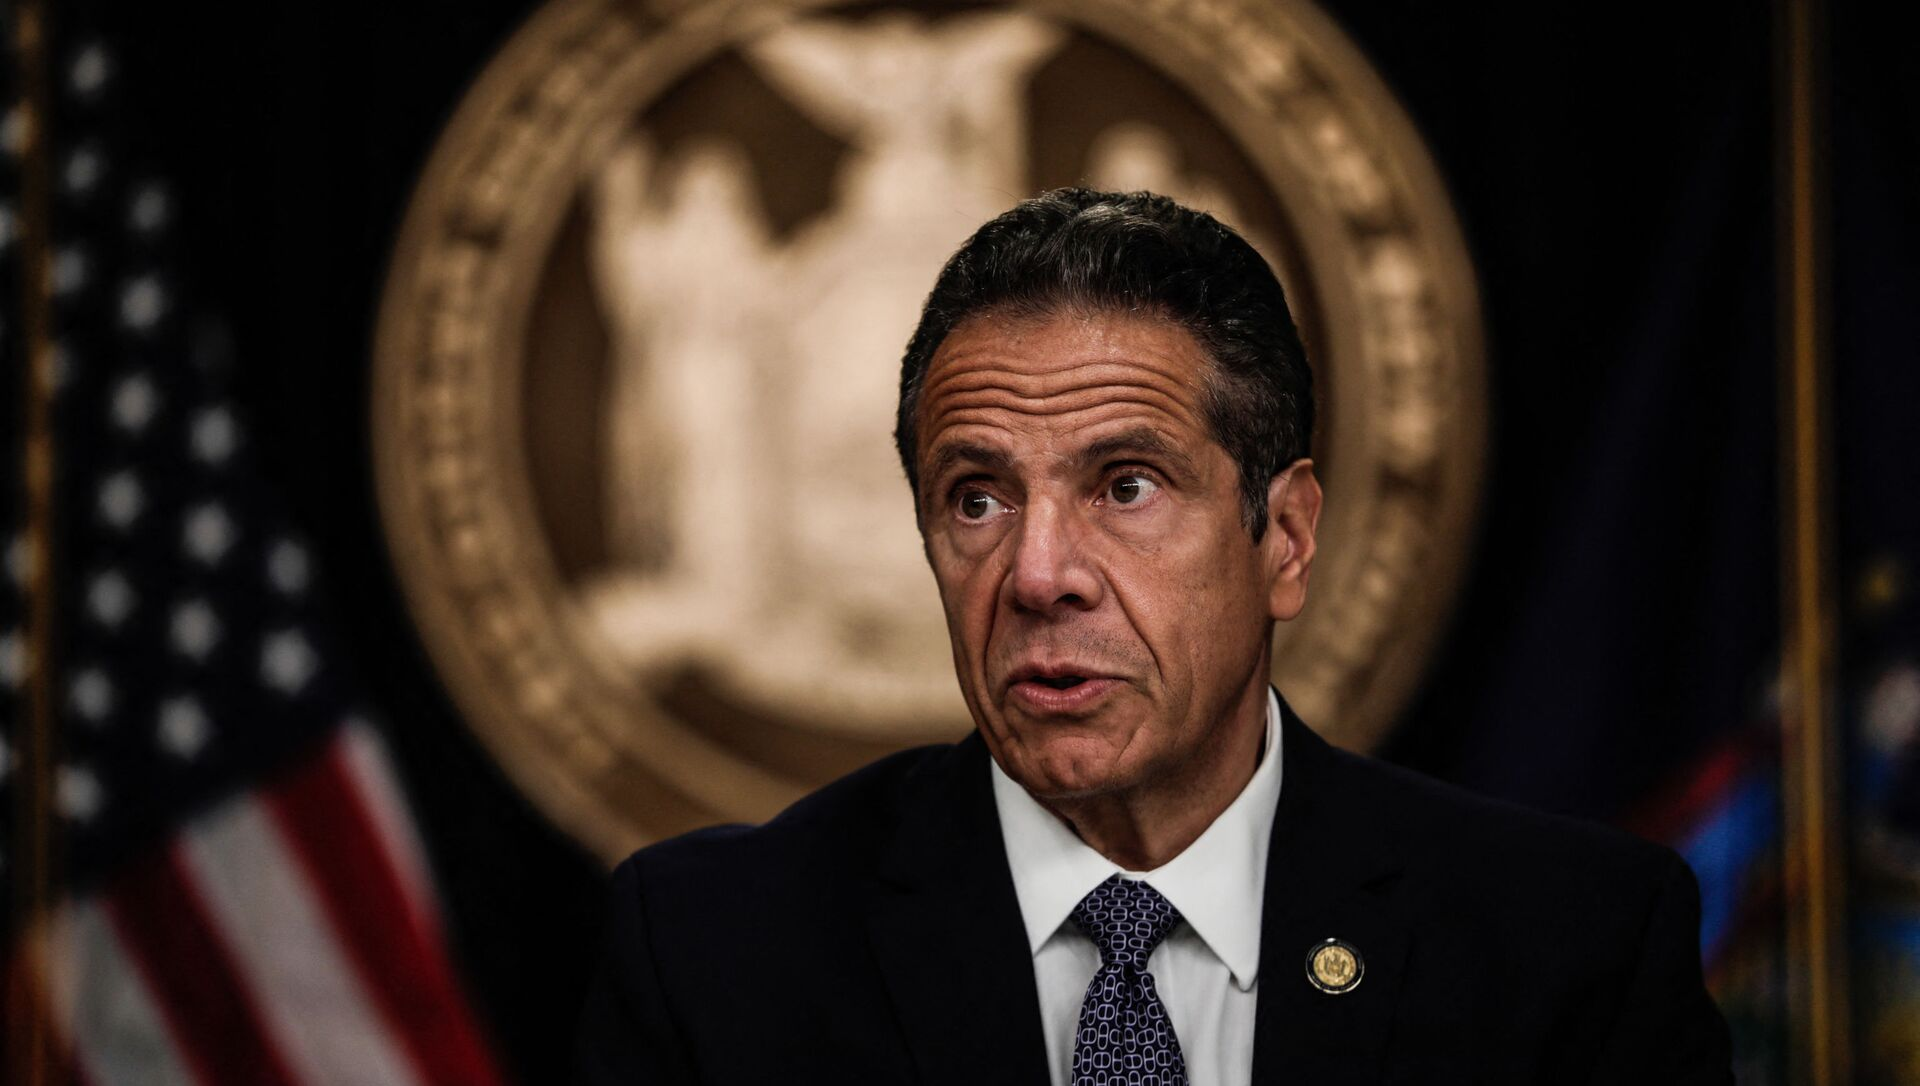 NEW YORK, NY - JULY 01: New York Gov. Andrew Cuomo speaks at a news conference on July 1, 2020 in New York City. The governor expressed alarm at Director of the National Institute for Allergy and Infectious Diseases Dr. Anthony Fauci's recent prediction that there could be 100,000 new Covid-19 cases per day and provided a number of updates related to an increase of states where out-of-state visitors will be required to quarantine for 14 days.  - Sputnik International, 1920, 06.08.2021